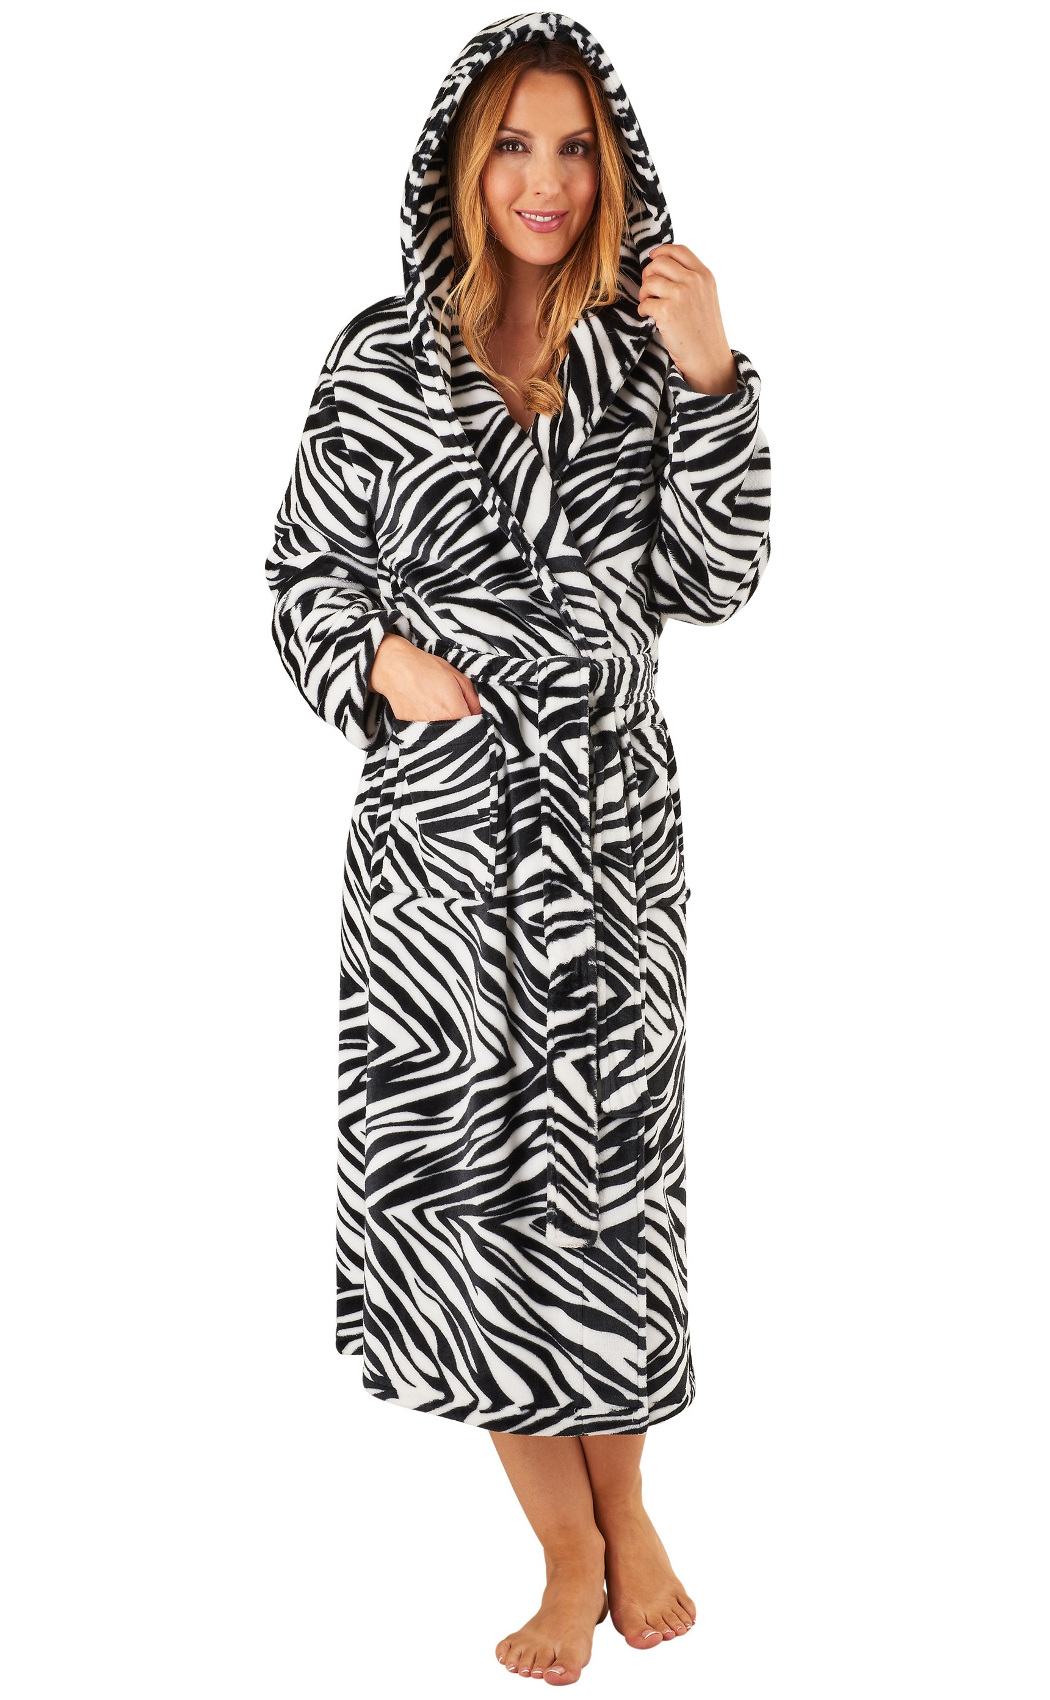 54a2eeb8d9 Dressing Gown Ladies Hooded Zebra Slenderella Animal Print Soft Fleecy  Bathrobe